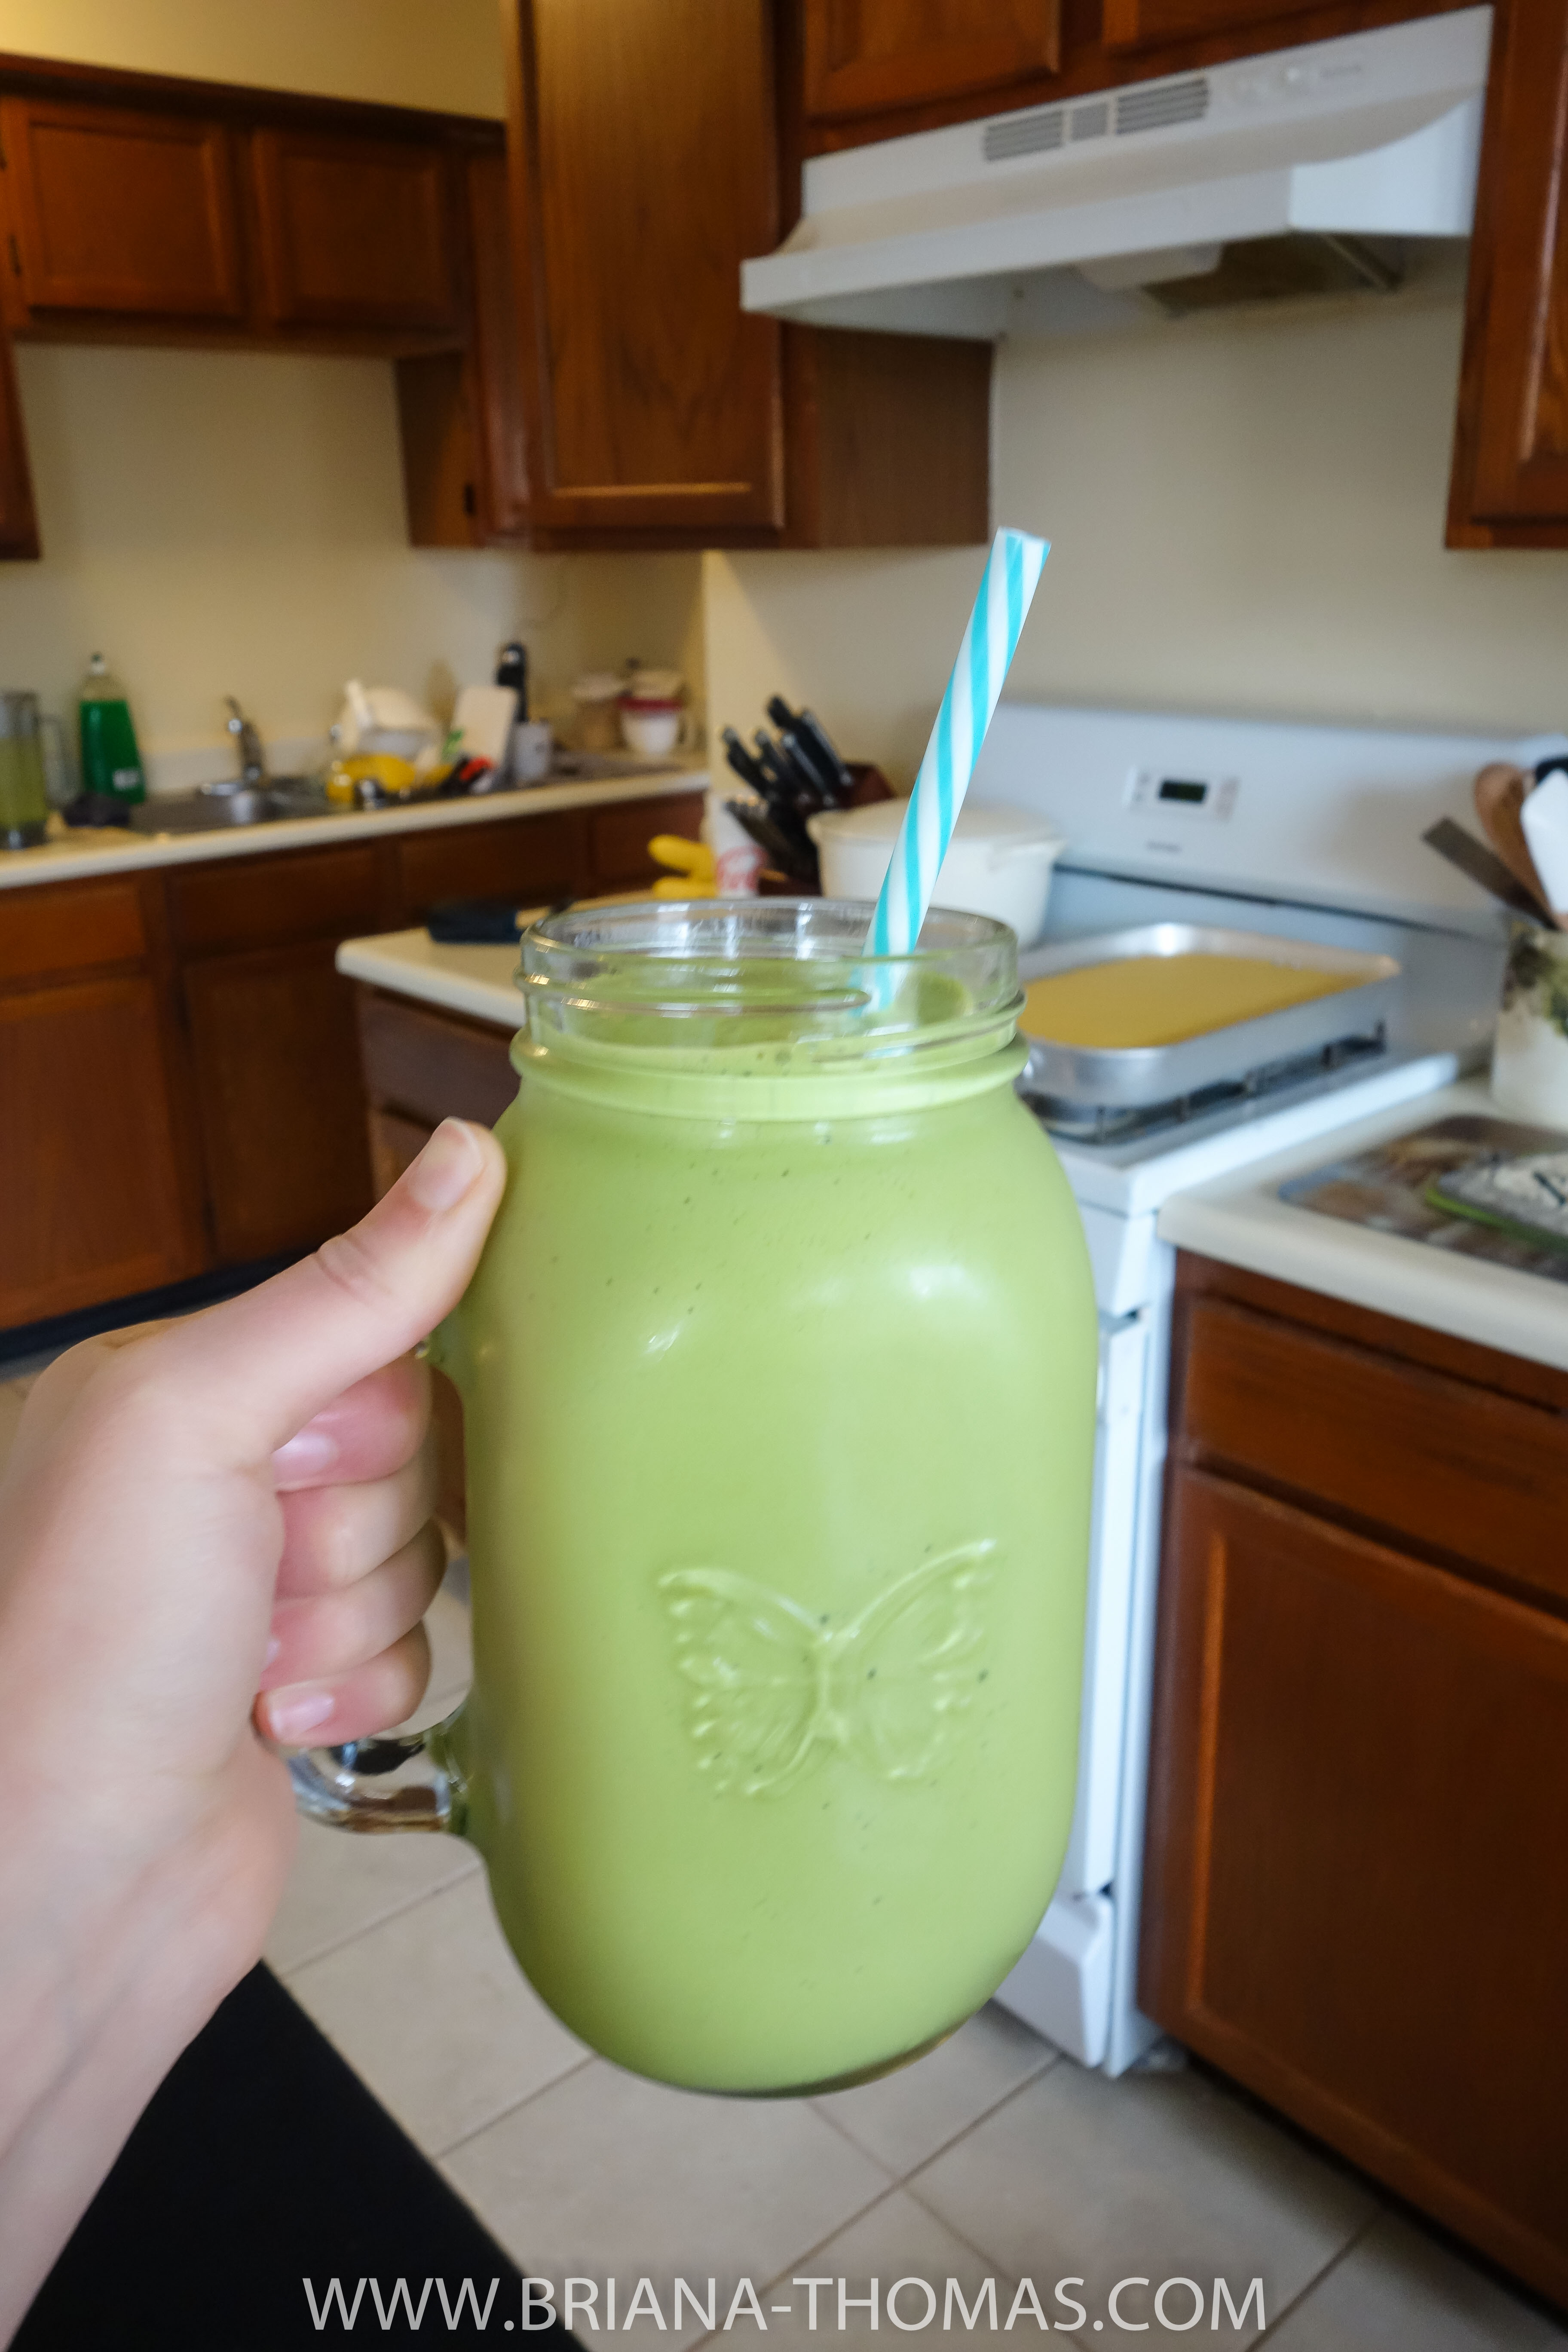 A pineapple, orange, and spinach kefir shake experiment